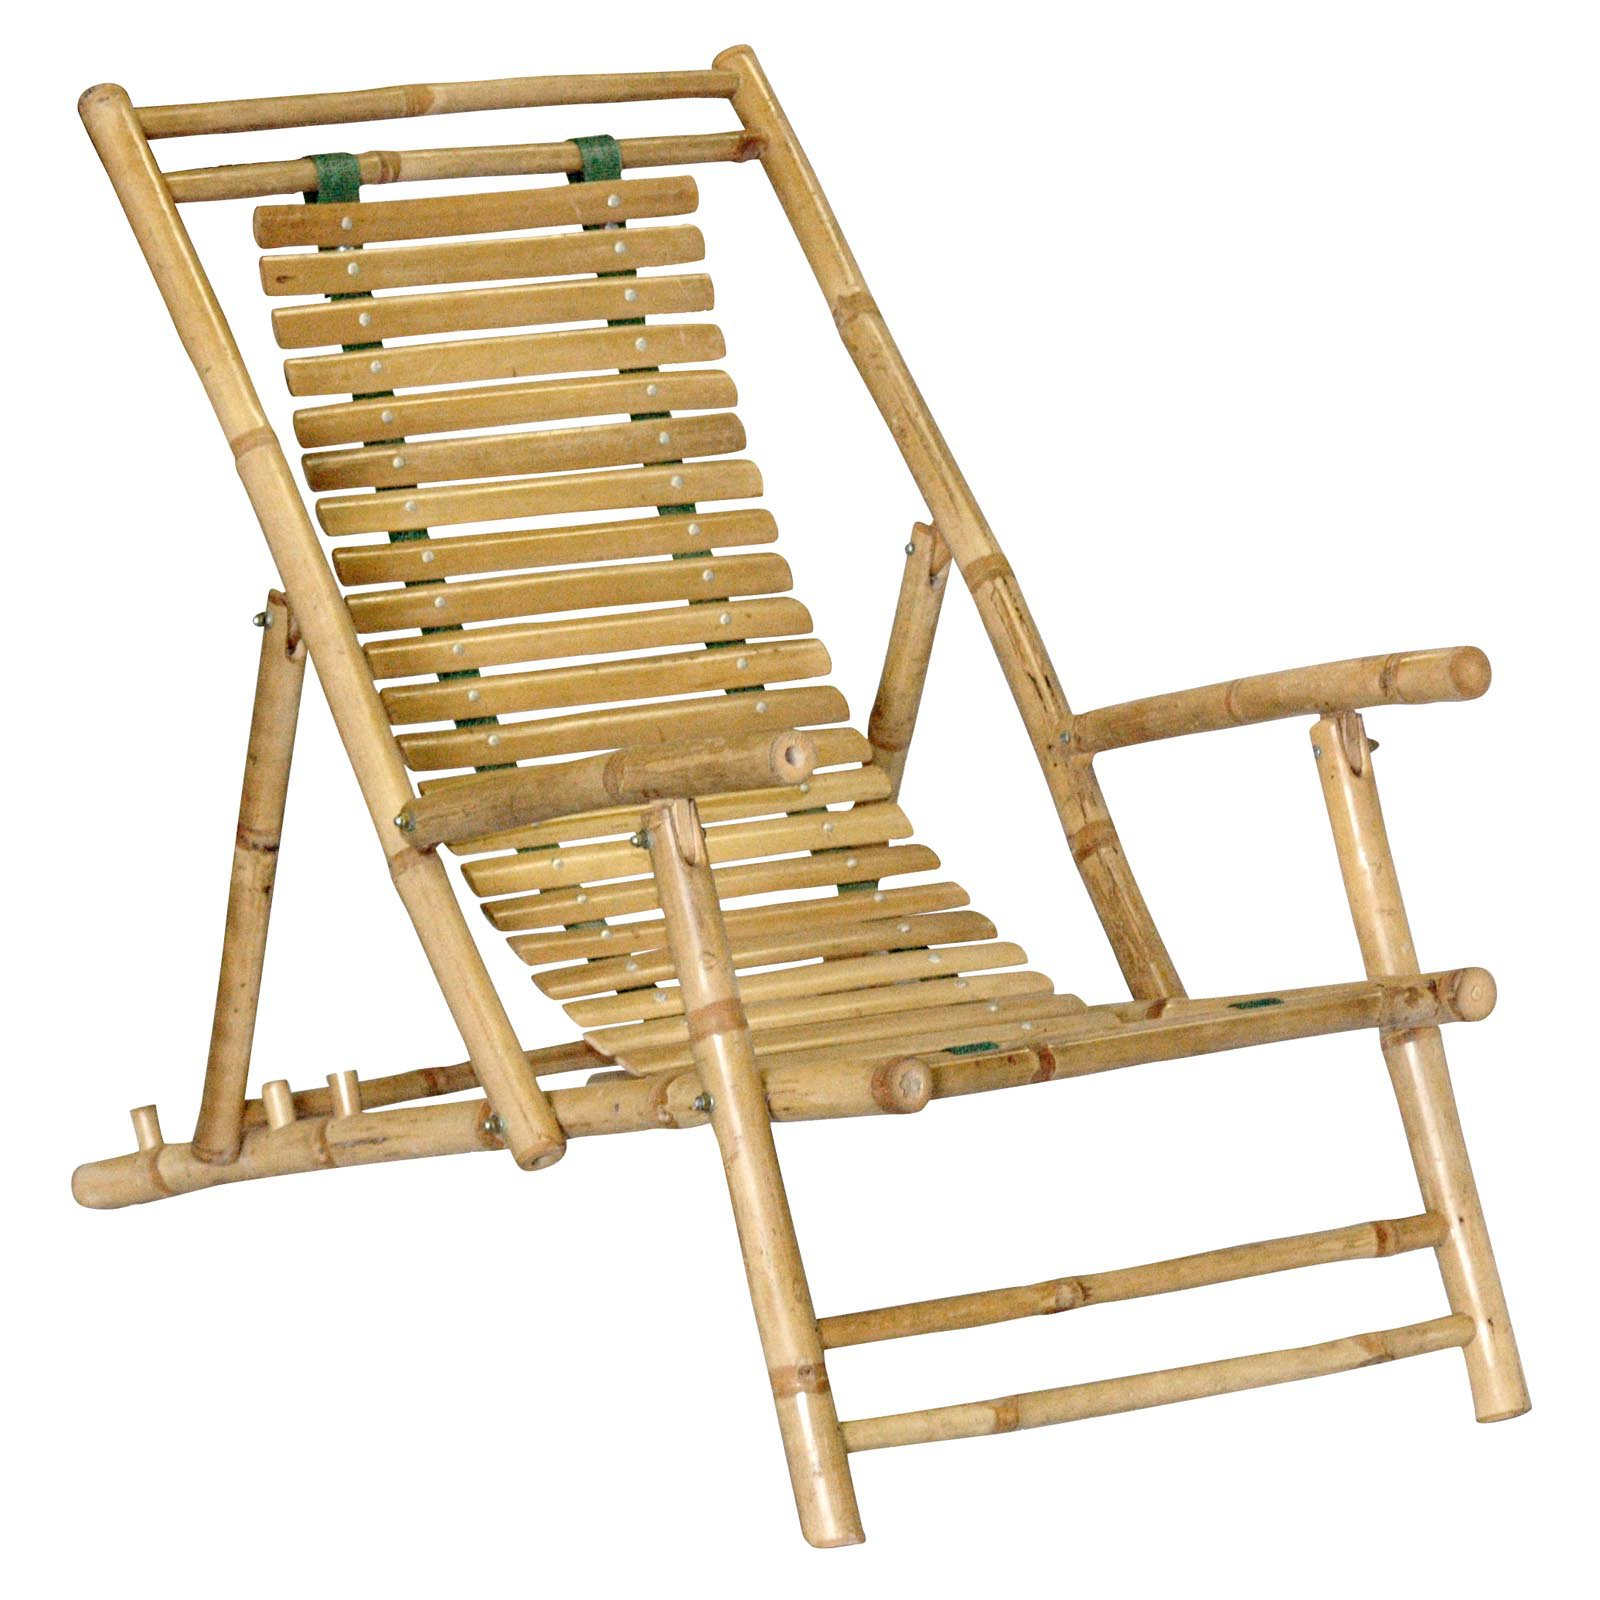 Bamboo54 Luhana Folding Adirondack Chairs Set of 2 by Bamboo54 Inc